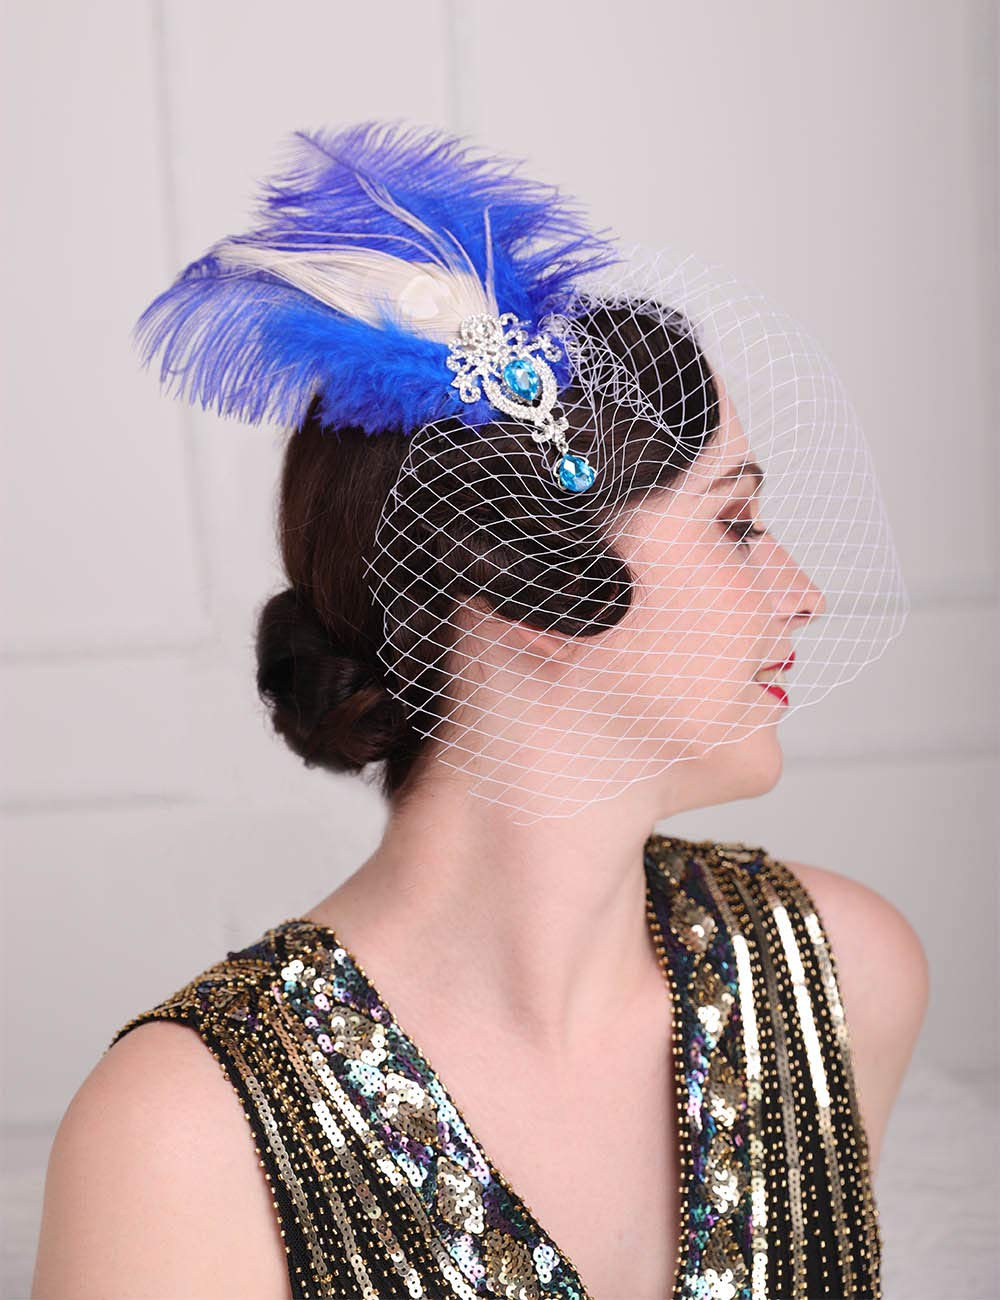 Aimimier 1920s Flapper Feather Hair Clip with Birdcage Veil Great Gatsby Headpiece Prom Party Peacock Feather Fascinator for Women and Girls